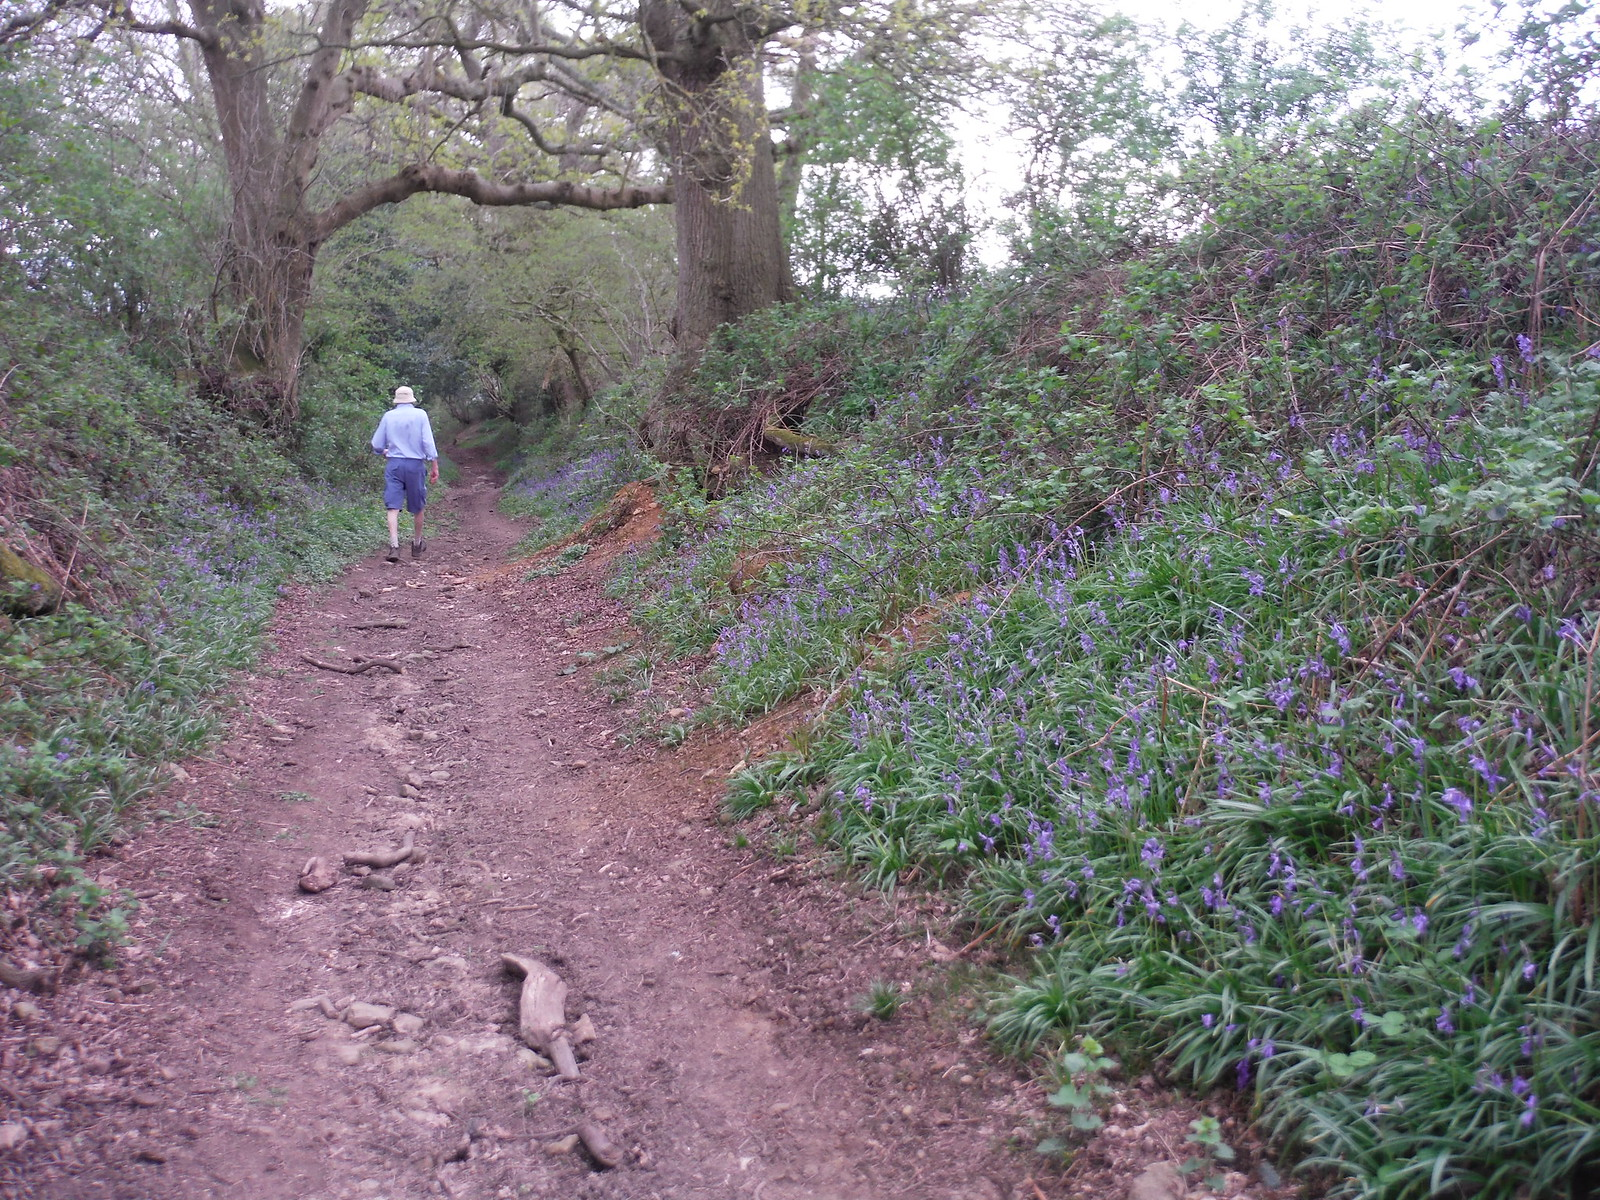 Bluebells in Sunken Path down from Upper Vining Farm SWC Walk 48 Haslemere to Midhurst (via Lurgashall or Lickfold)